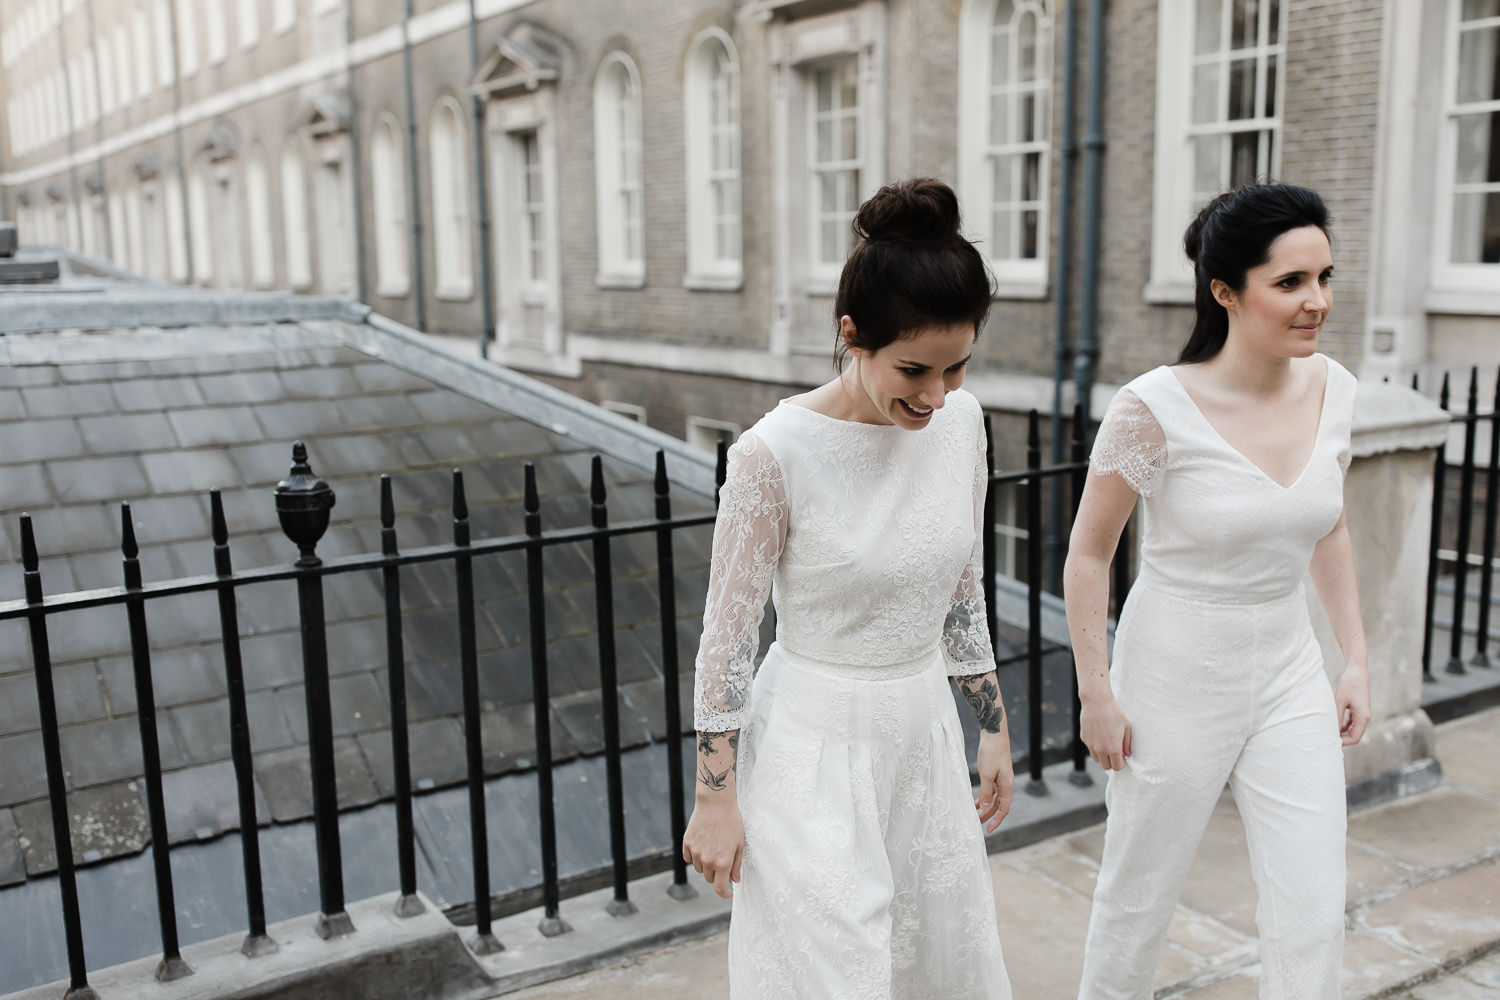 Spring_Somerset_House_London_Wedding_082.jpg